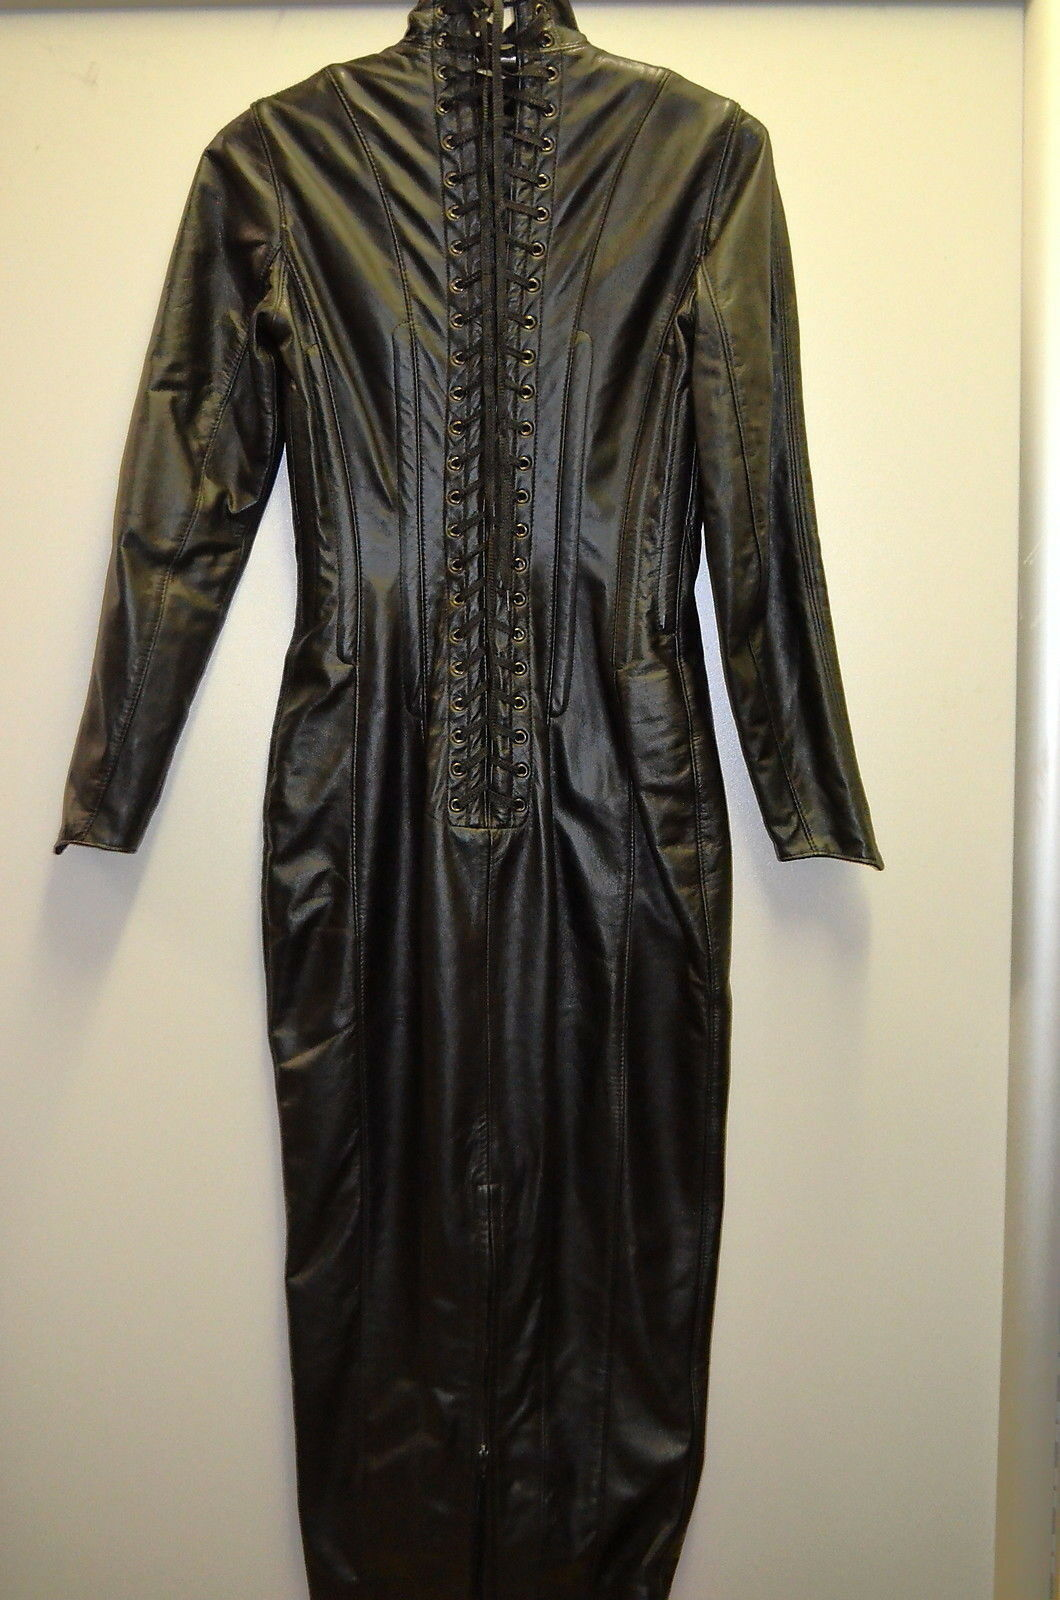 North Bound Leather dress talla M in style 6181 made in M Canada 100% cuero pos 70 a14c0f